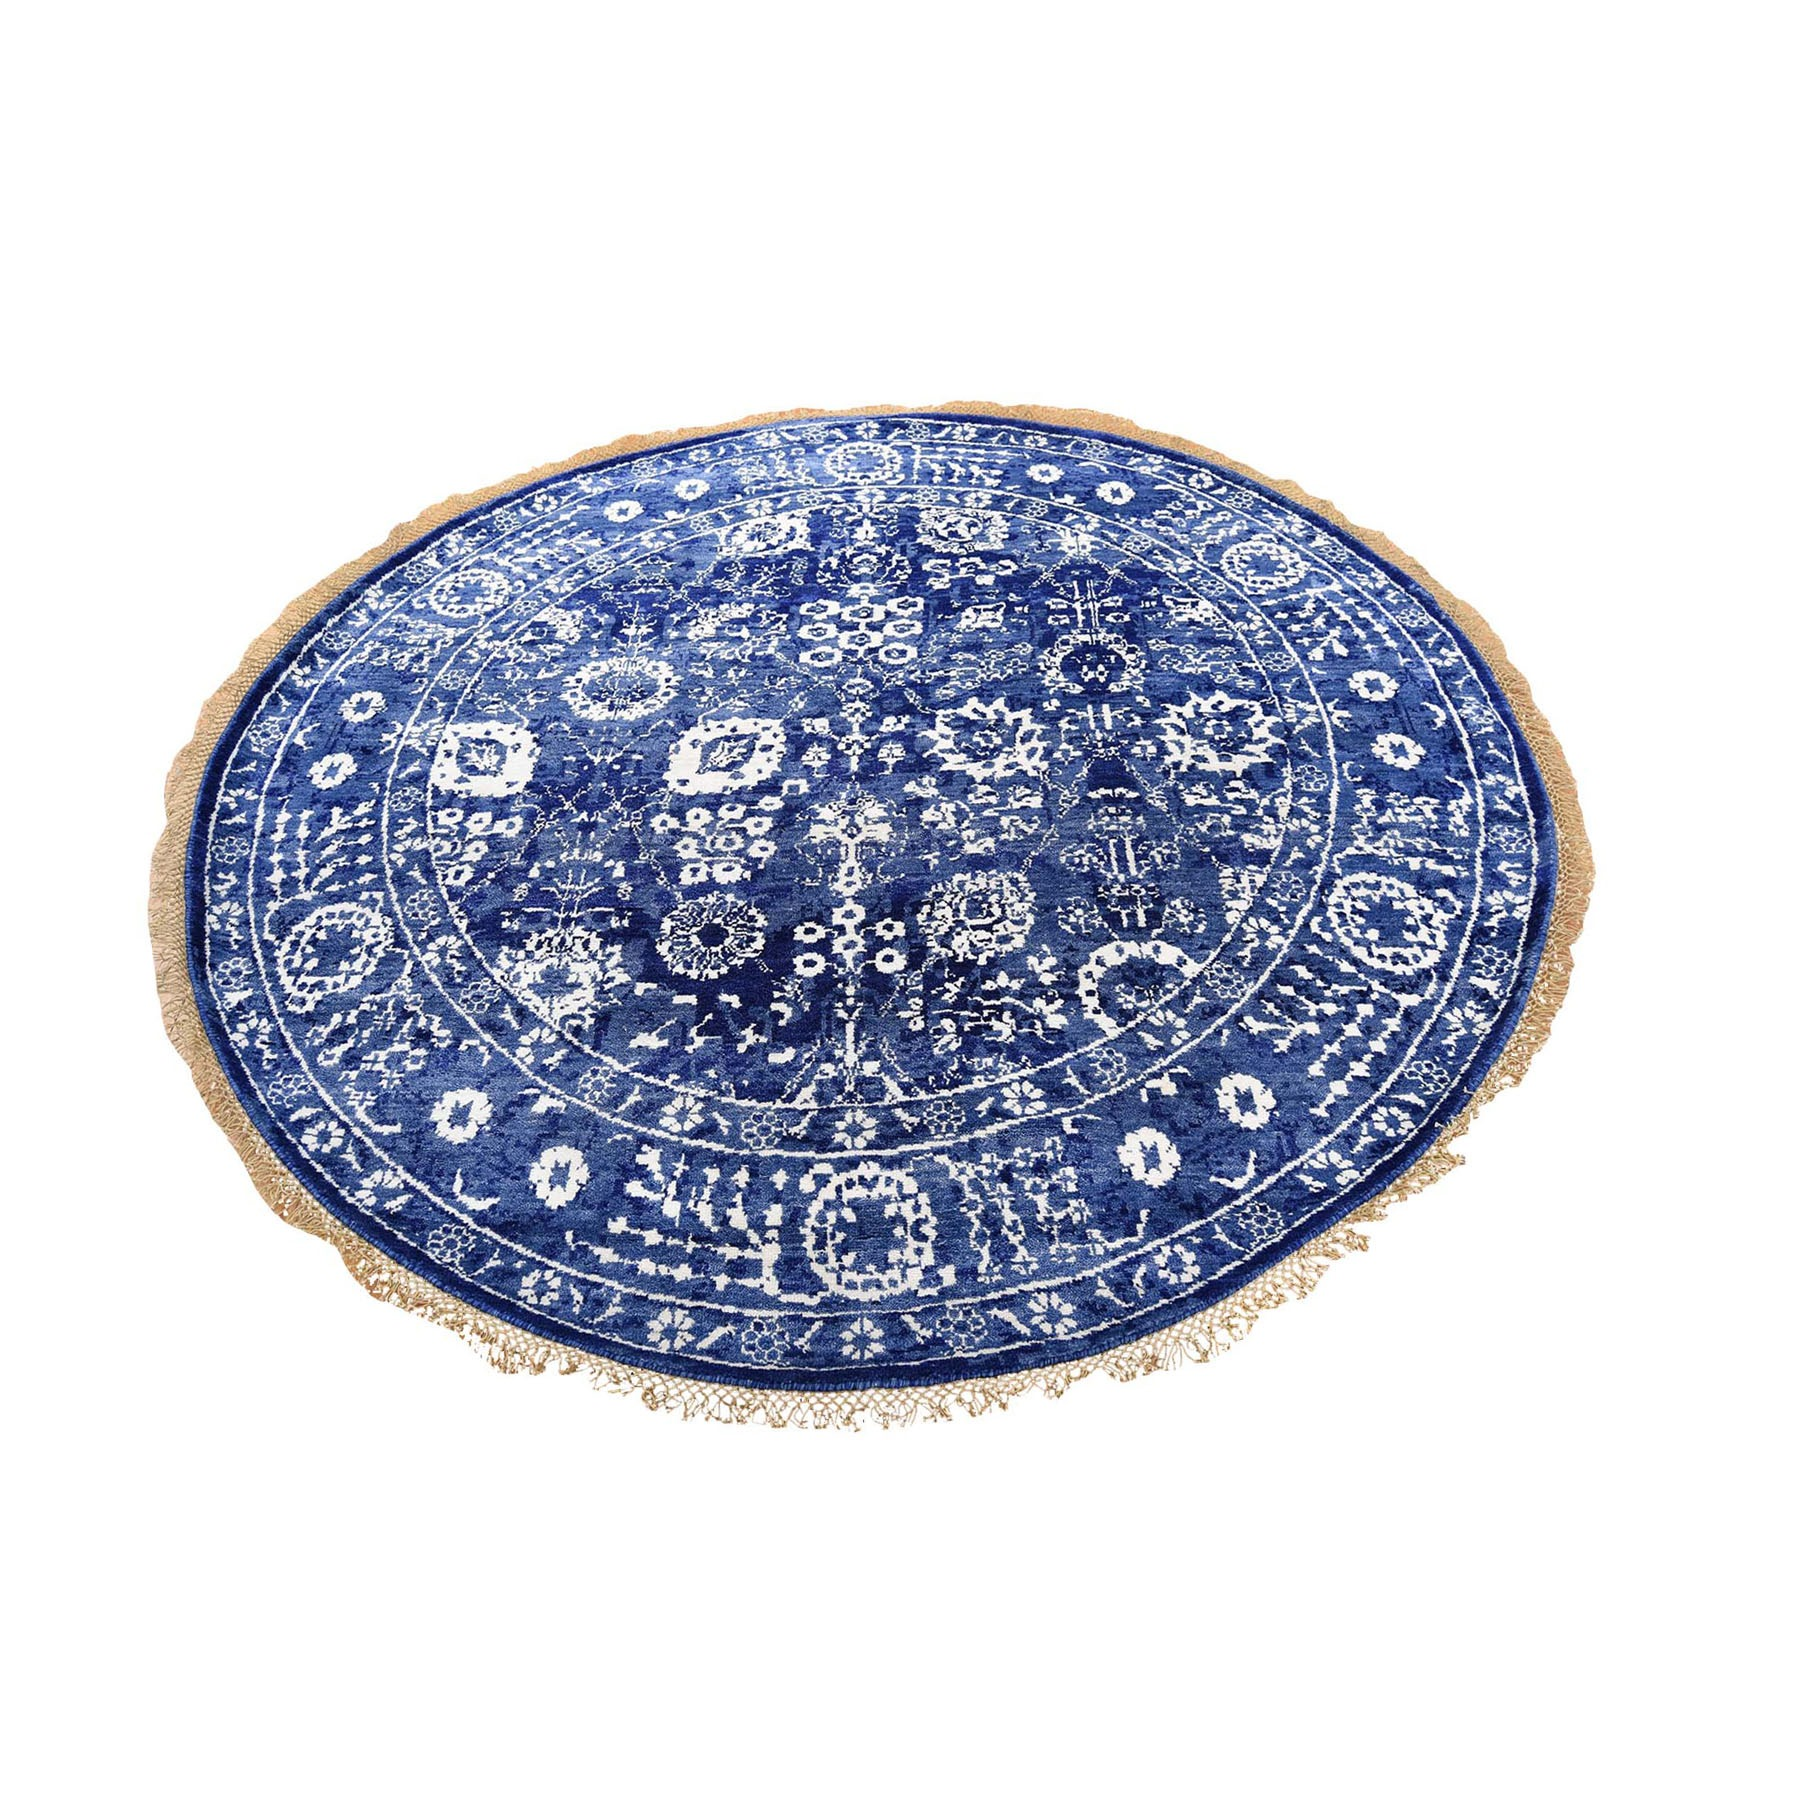 6'x6' Round Blue Wool and Silk Tone On Tone Tabriz Hand Woven Oriental Rug